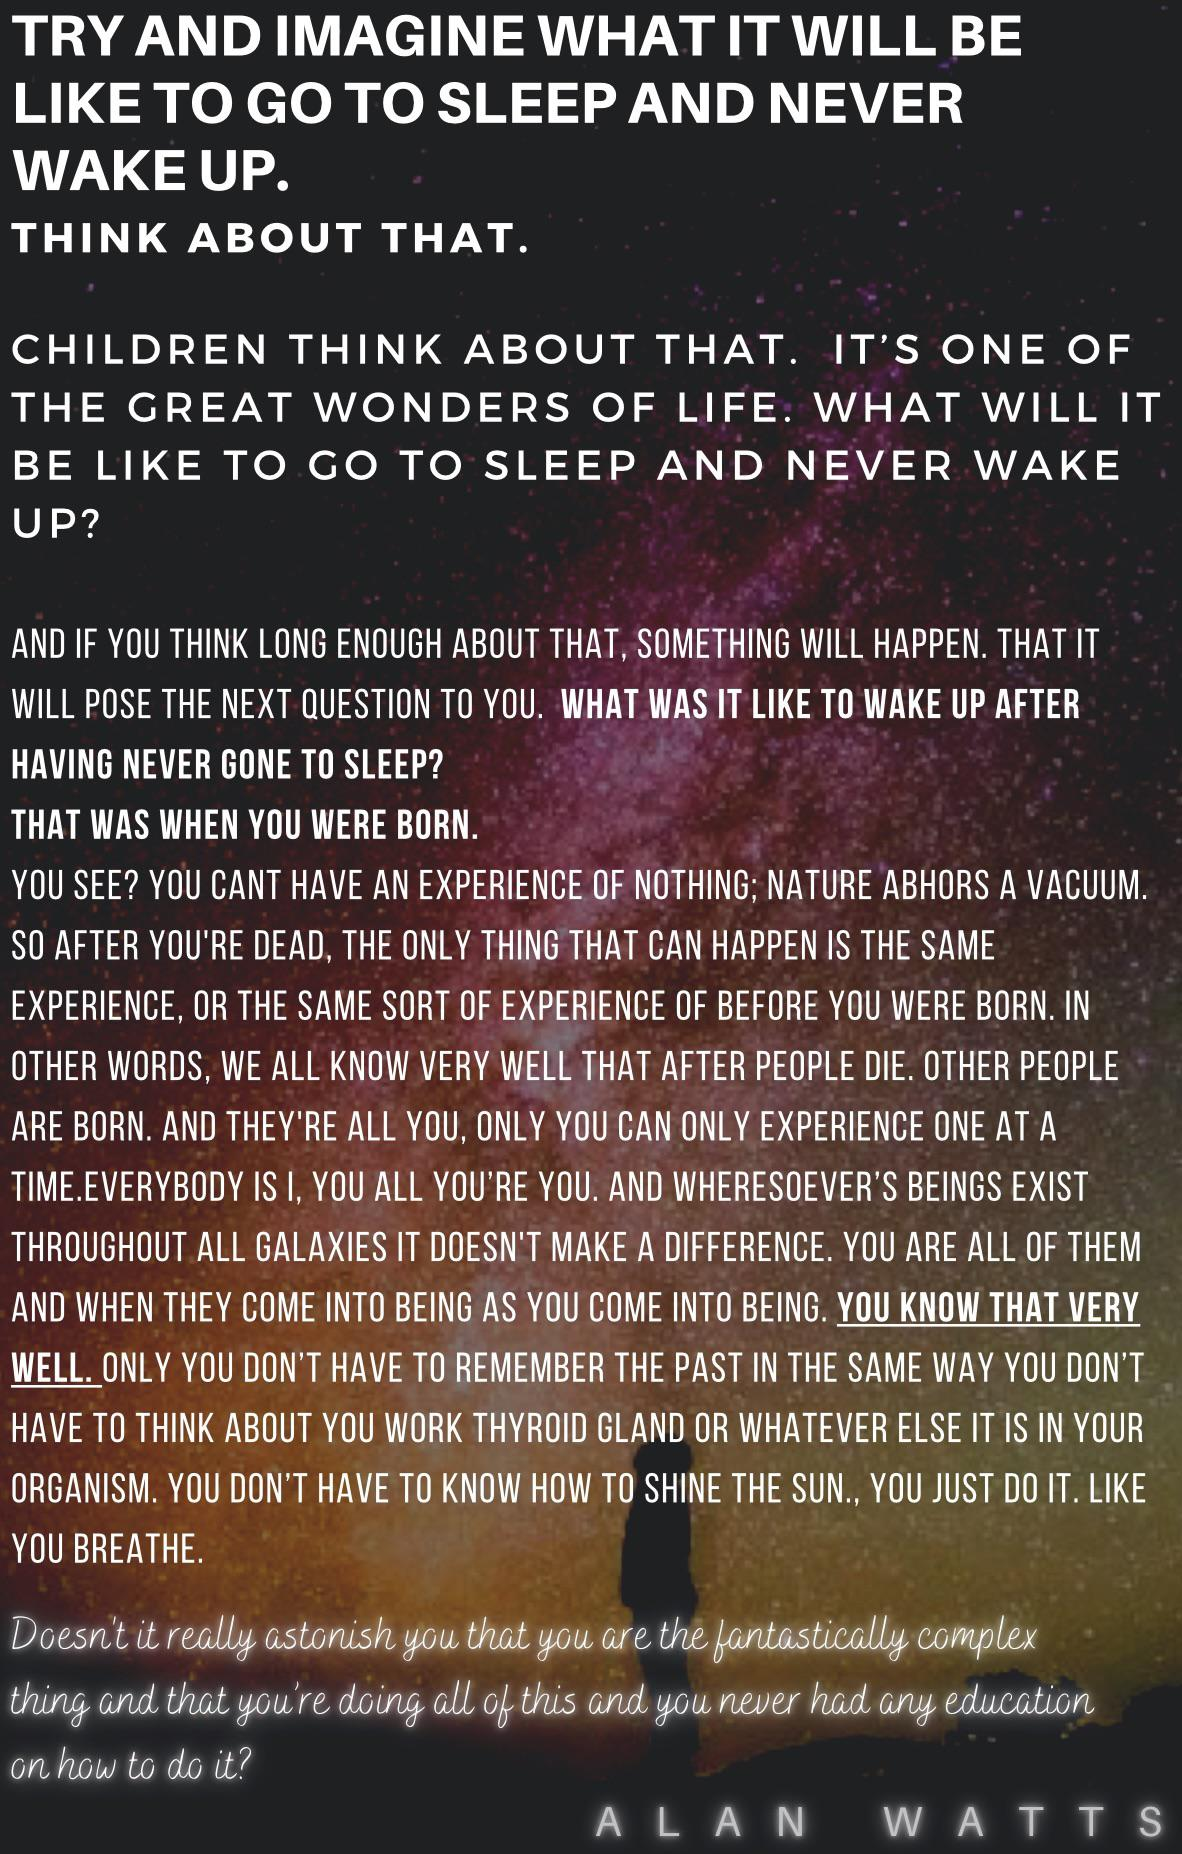 """""""Doesn't it really astonish you that you are the fantastically complex thing and that you're doing all of this and you never had any education on how to do it?"""" — The Real You • Alan Watts [512px x 800px]"""